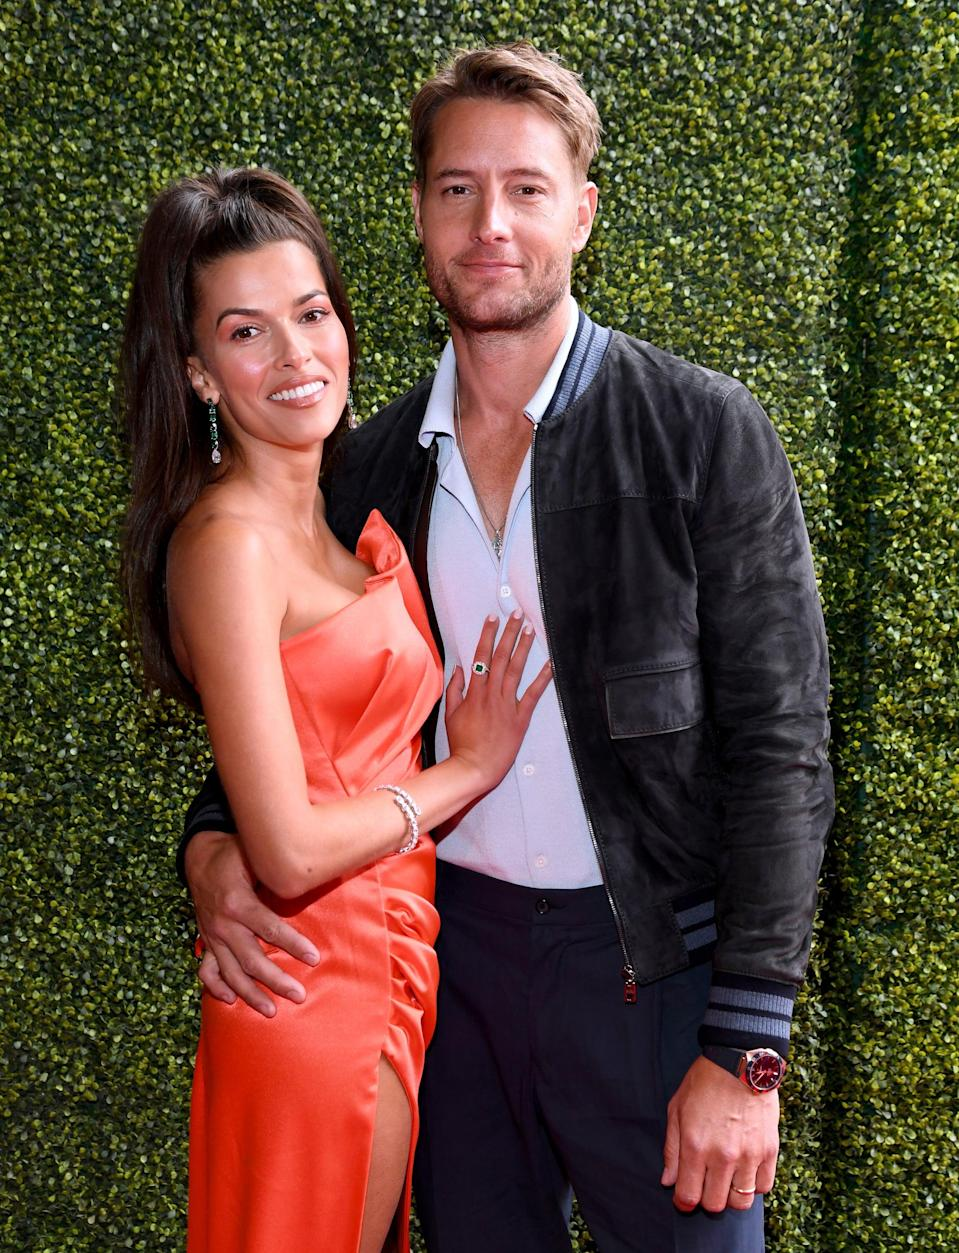 LOS ANGELES, CALIFORNIA - MAY 16: (L-R) Sofia Pernas and Justin Hartley attend the 2021 MTV Movie & TV Awards at the Hollywood Palladium on May 16, 2021 in Los Angeles, California. (Photo by Kevin Mazur/2021 MTV Movie and TV Awards/Getty Images for MTV/ViacomCBS)